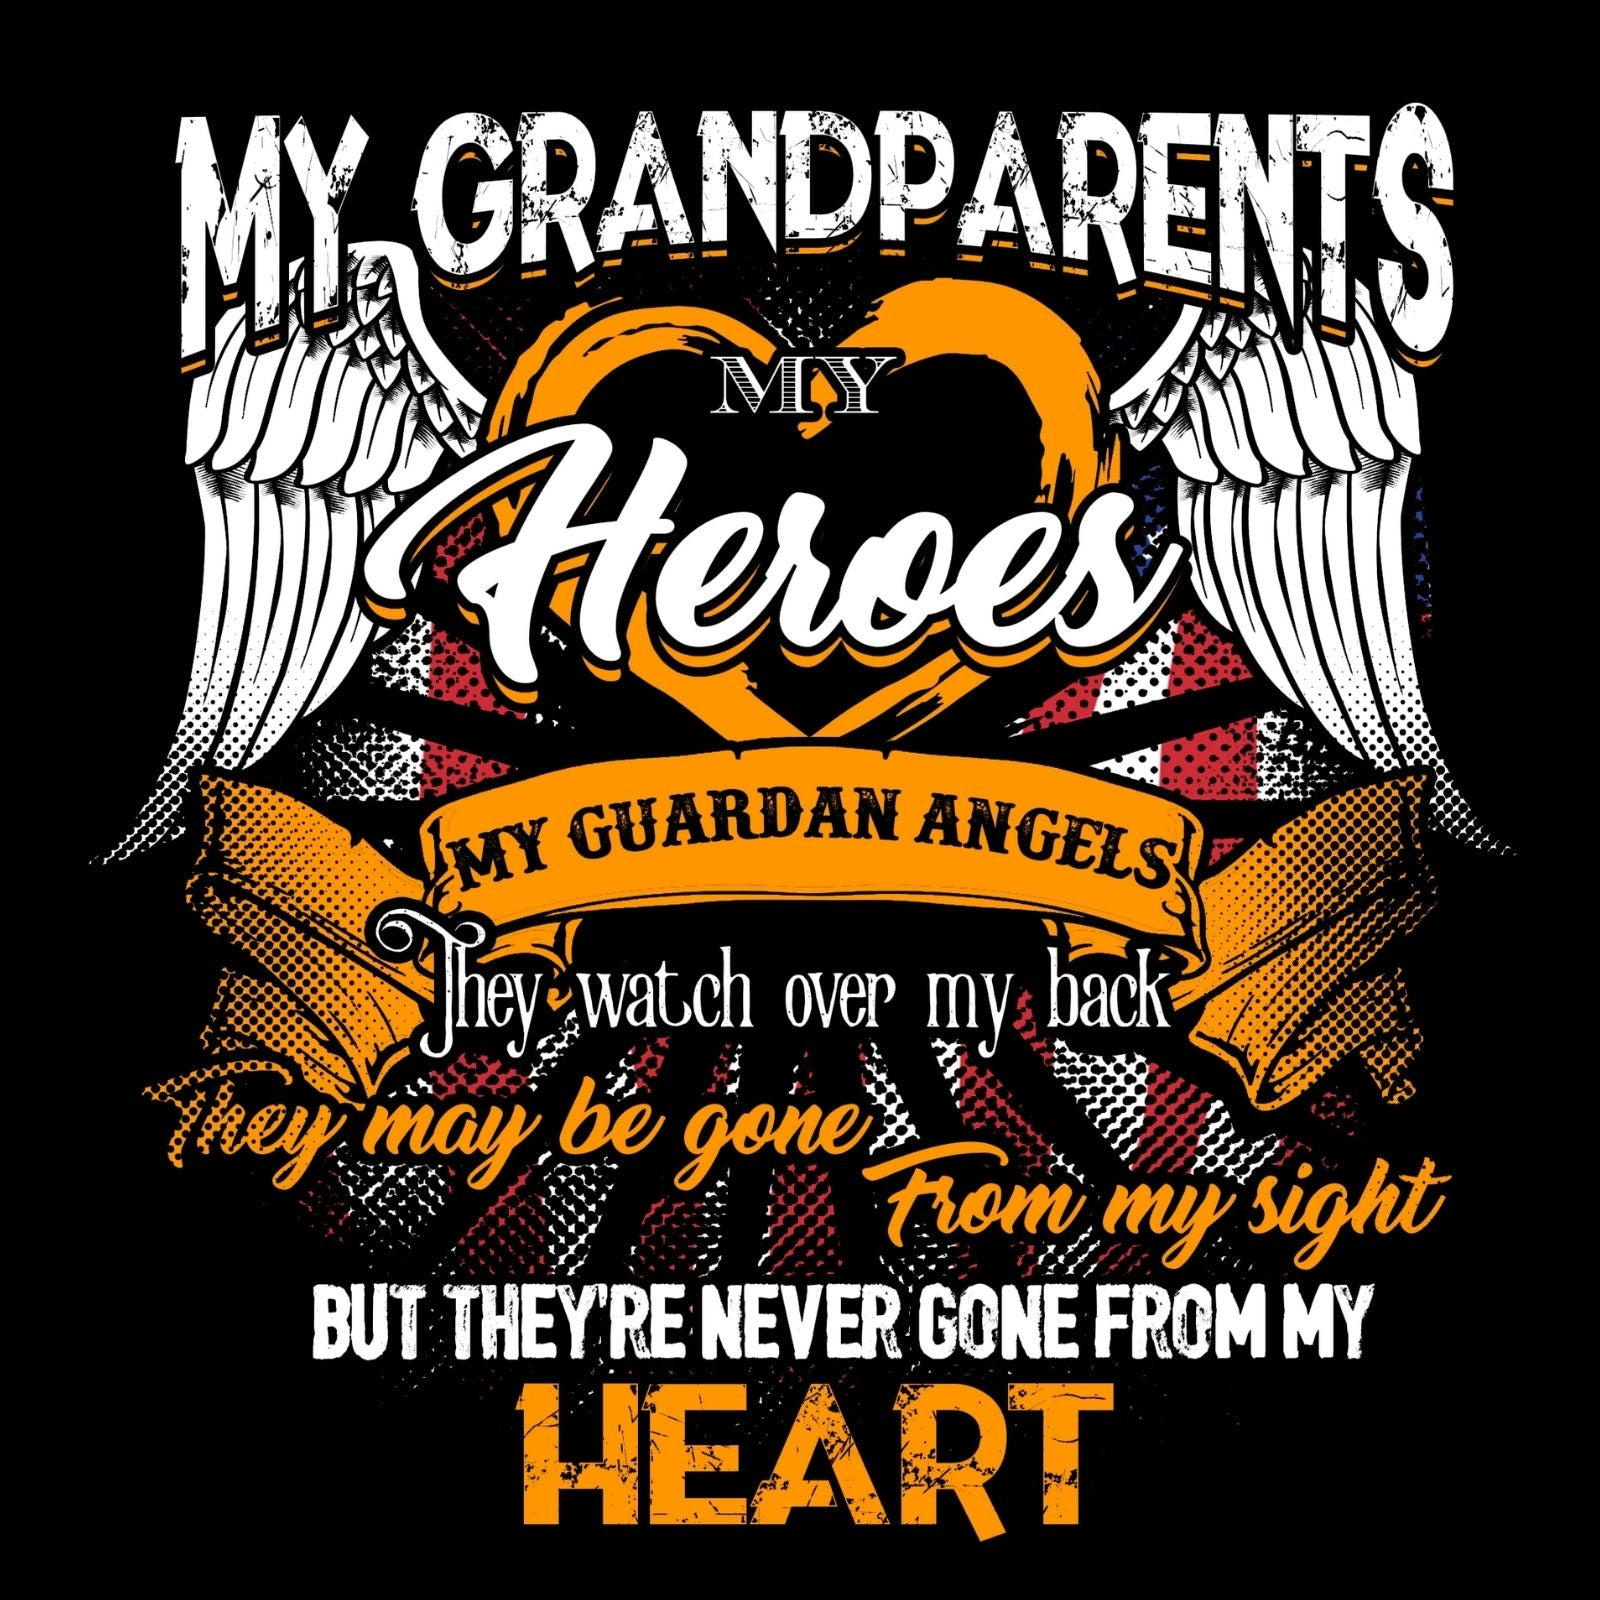 My Grandparents My Hero My Guardian Angels They Watch Over My Back They Maybe Gone From My Sight But They're Never Gone From My Heart - Bastard Graphics